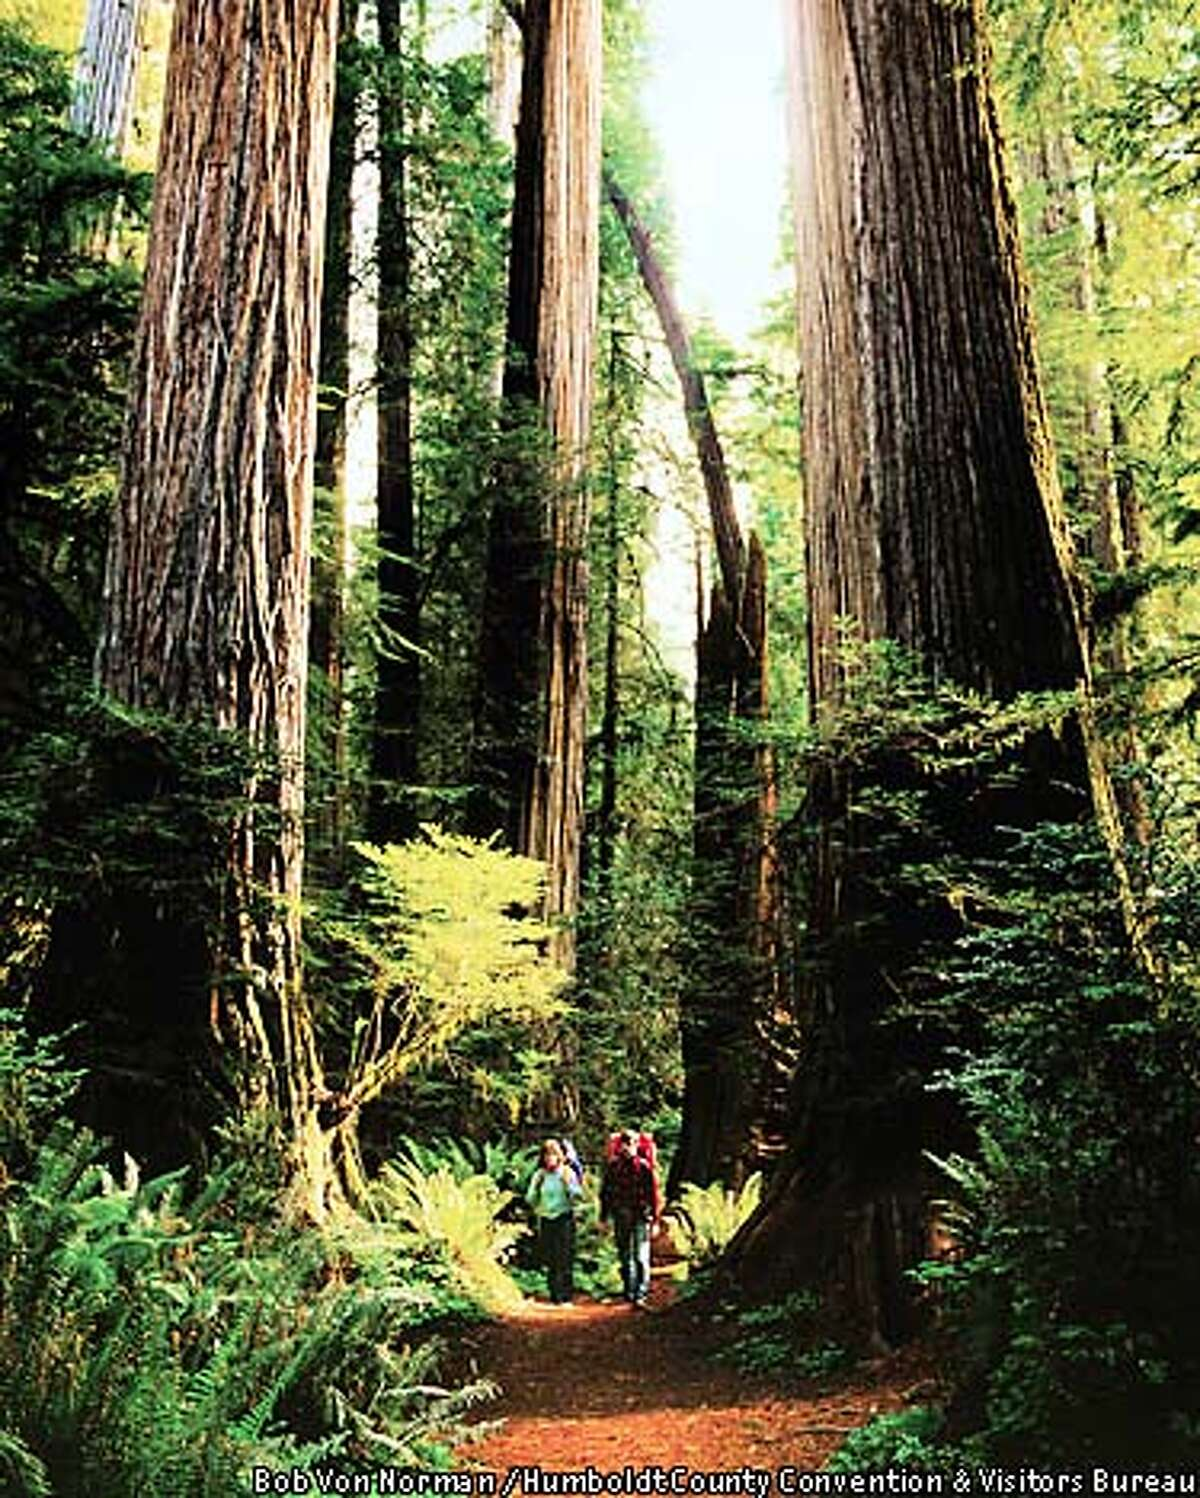 Among giants: While not all of them are open to the public, Humboldt County redwood forests hold some of the world's tallest and oldest trees. Humboldt County Convention & Visitors Bureau photo by Bob Von Norman